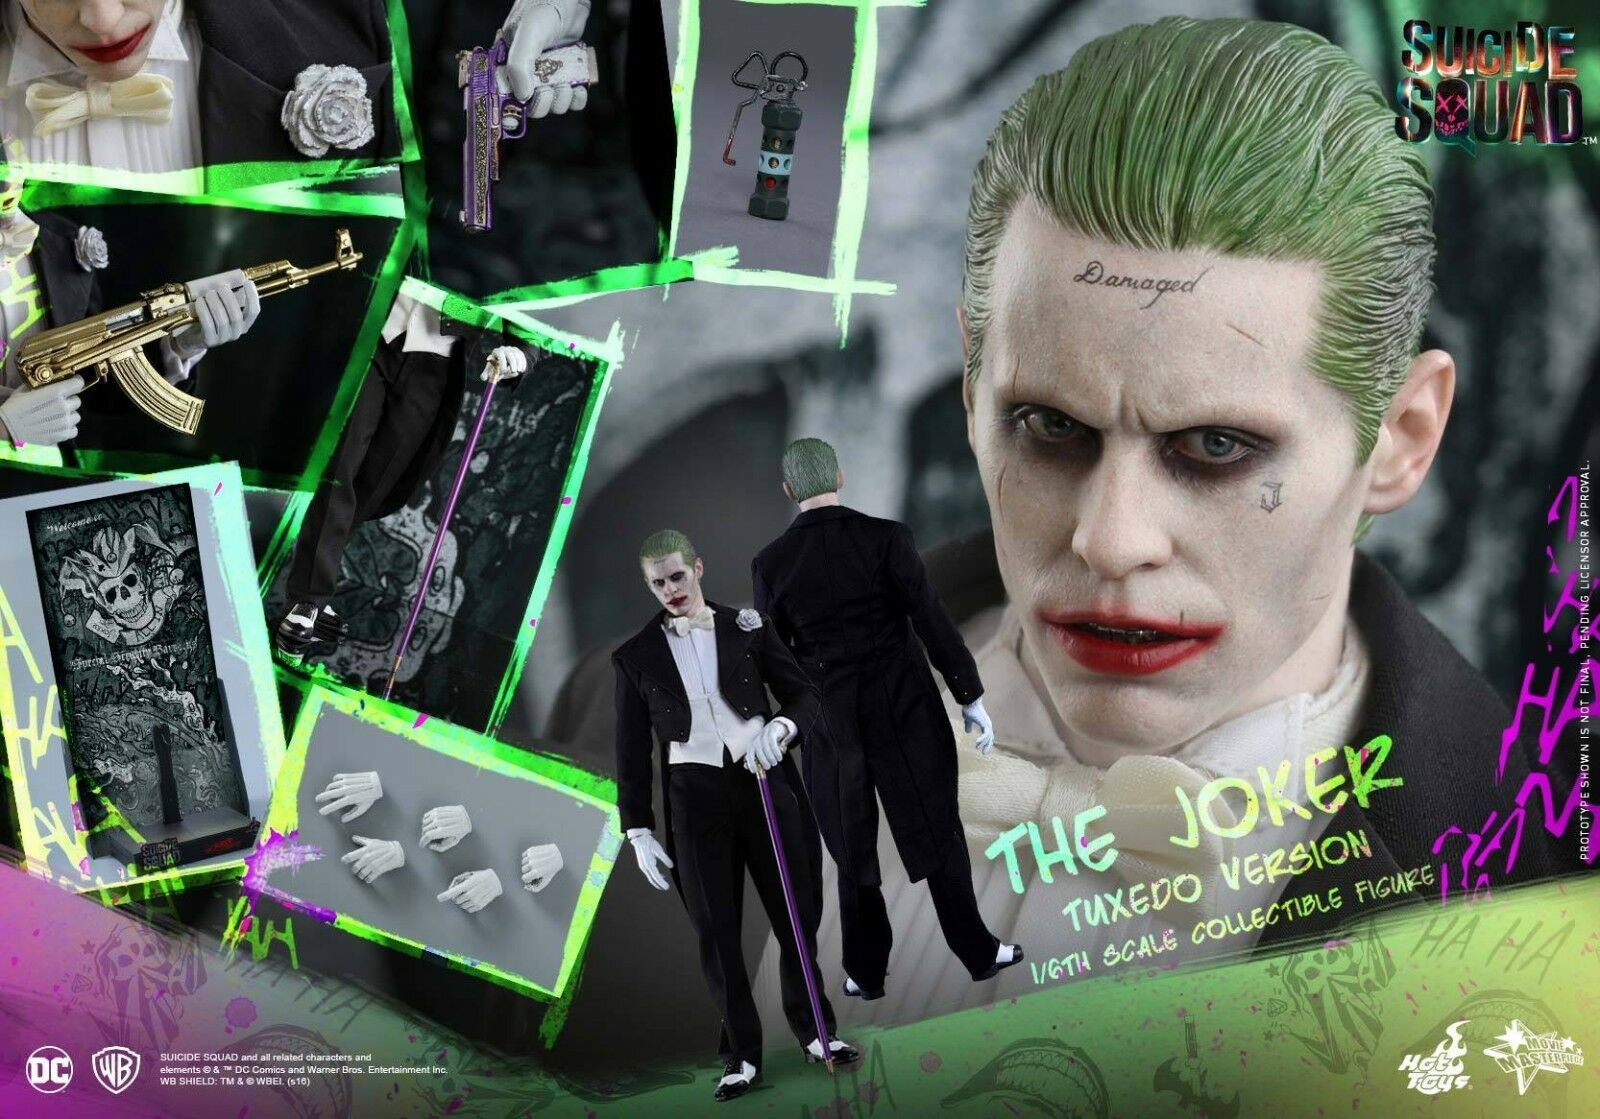 Hot Toys MMS395 Suicide Squad 1 6th Scale The Joker Figure Tuxedo Version